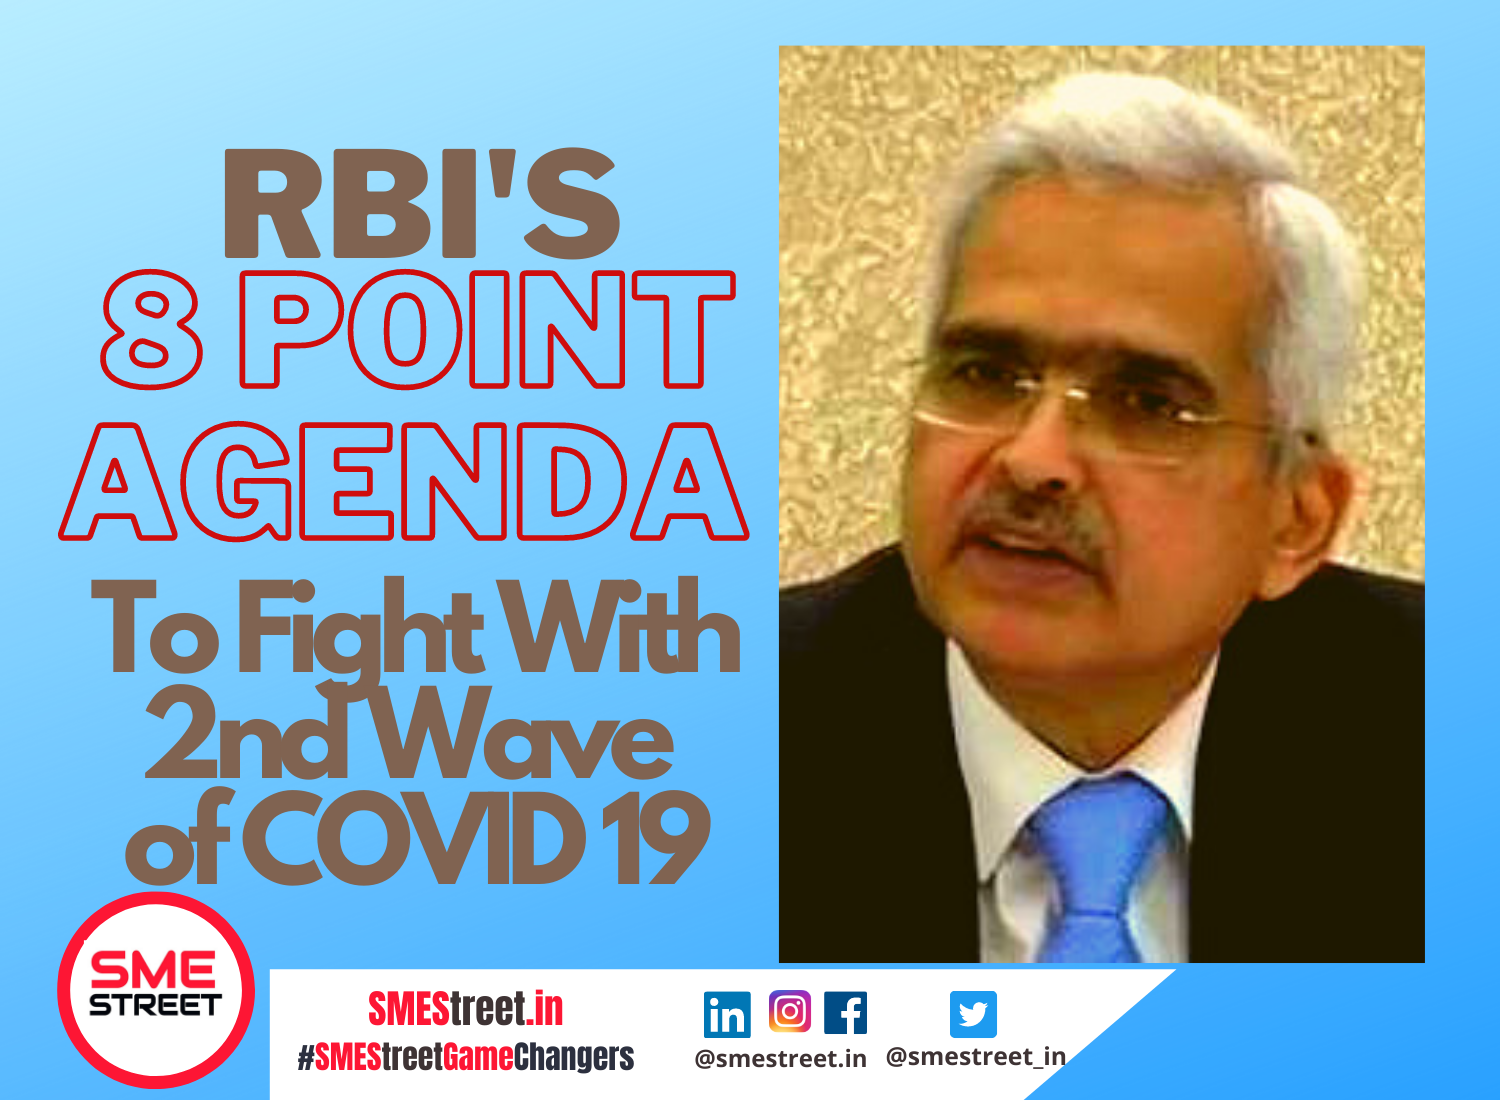 RBI's 8 Point COVID 2nd Wave Relief Agenda